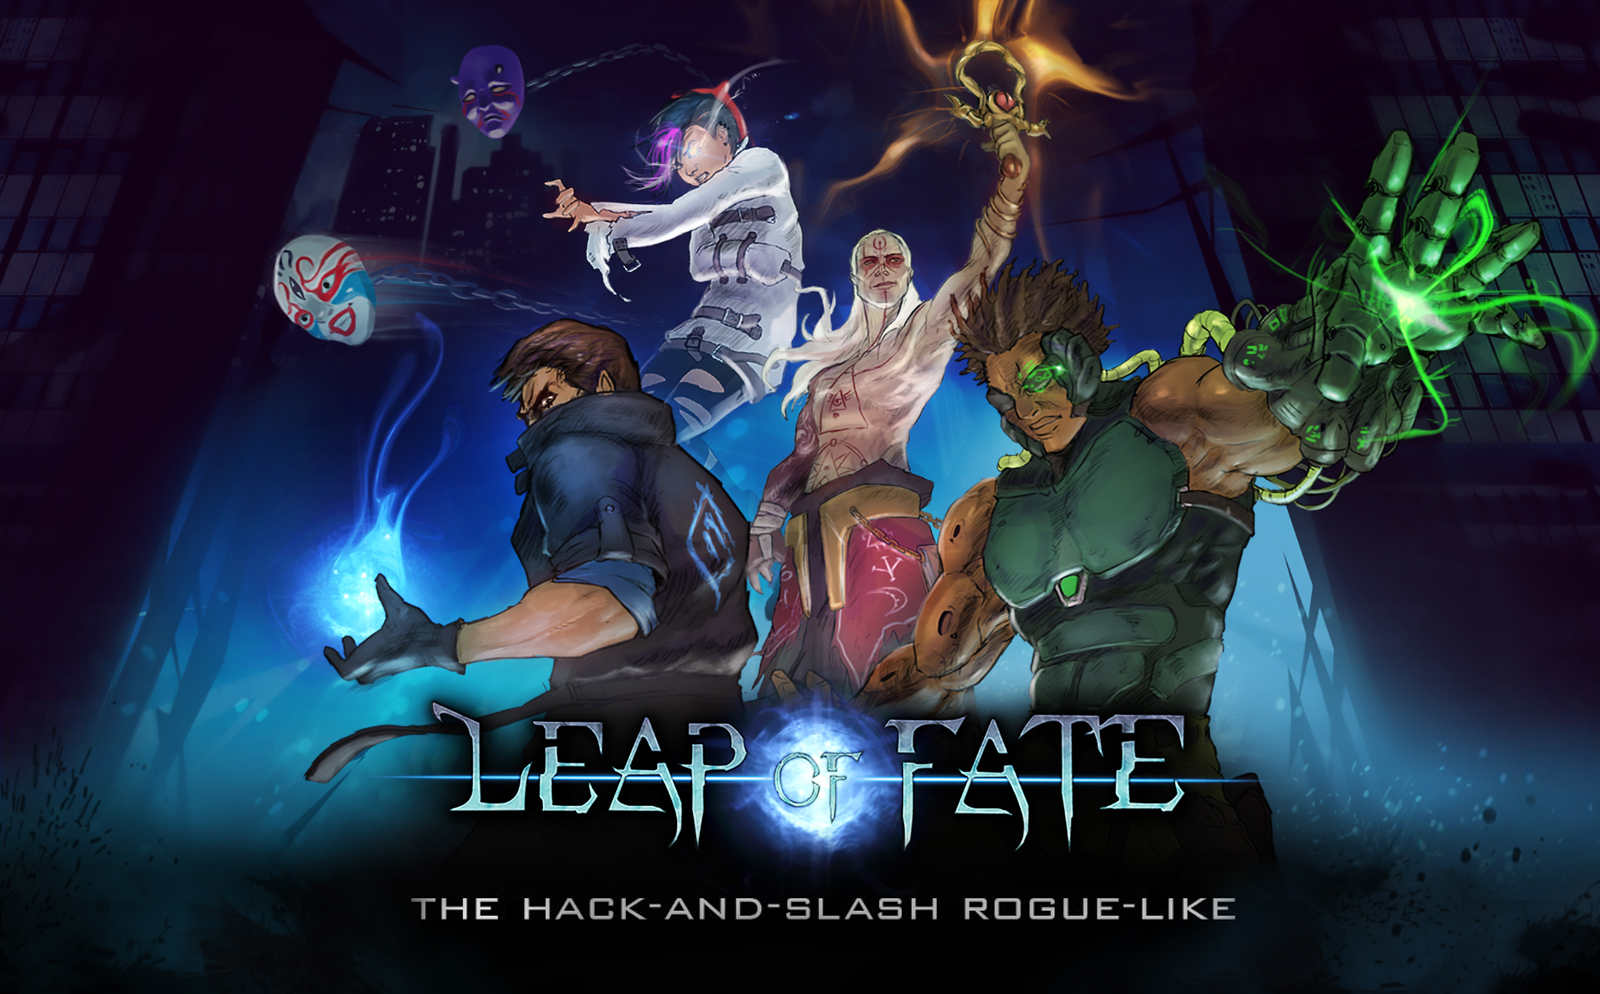 leap_of_fate_hack_and_slash_coming_to_linux_and_windows_pc